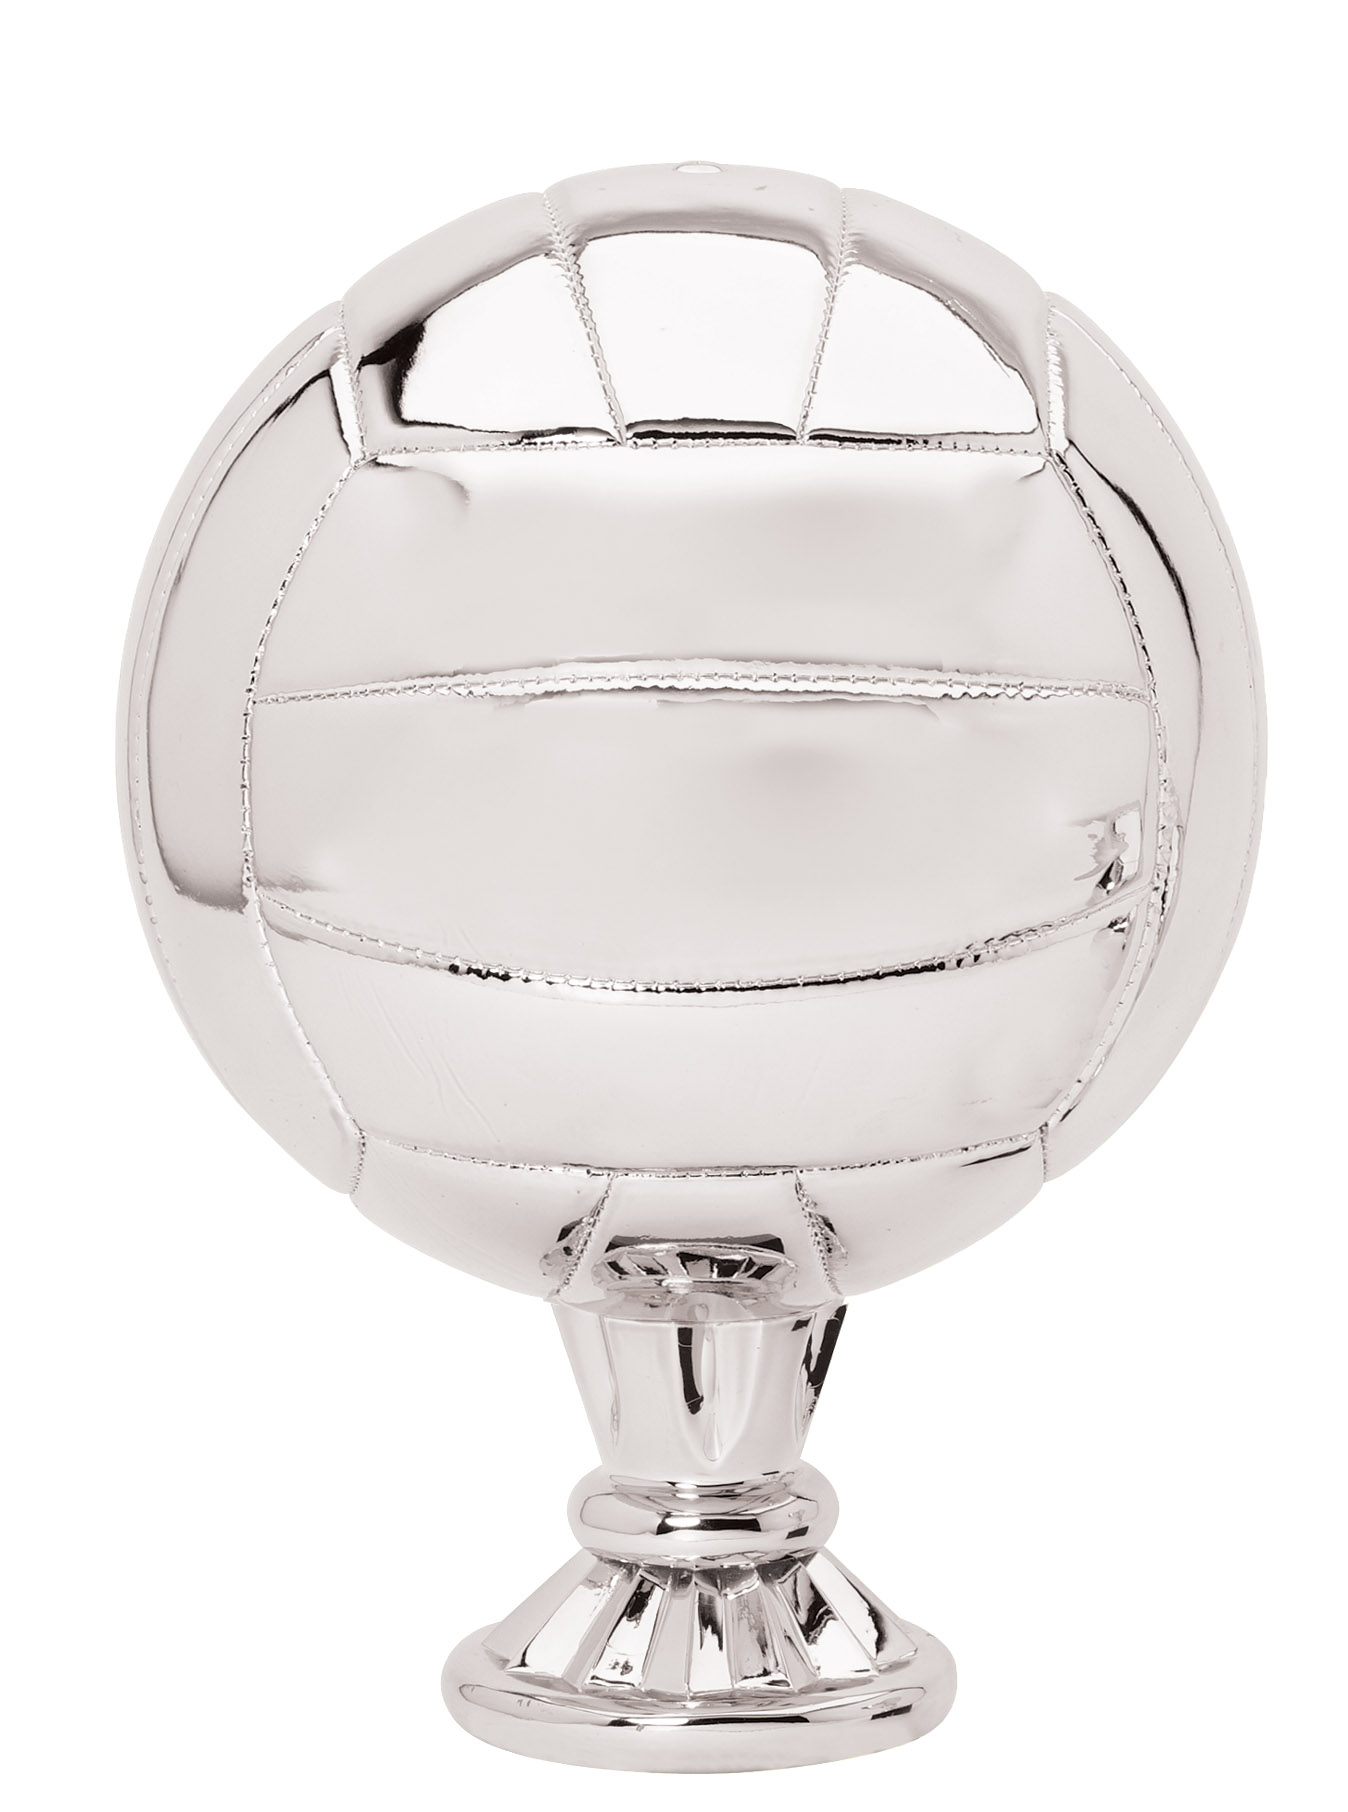 """Volleyball - Silver   RG3217 - 11.5"""" tall  Price = $109"""